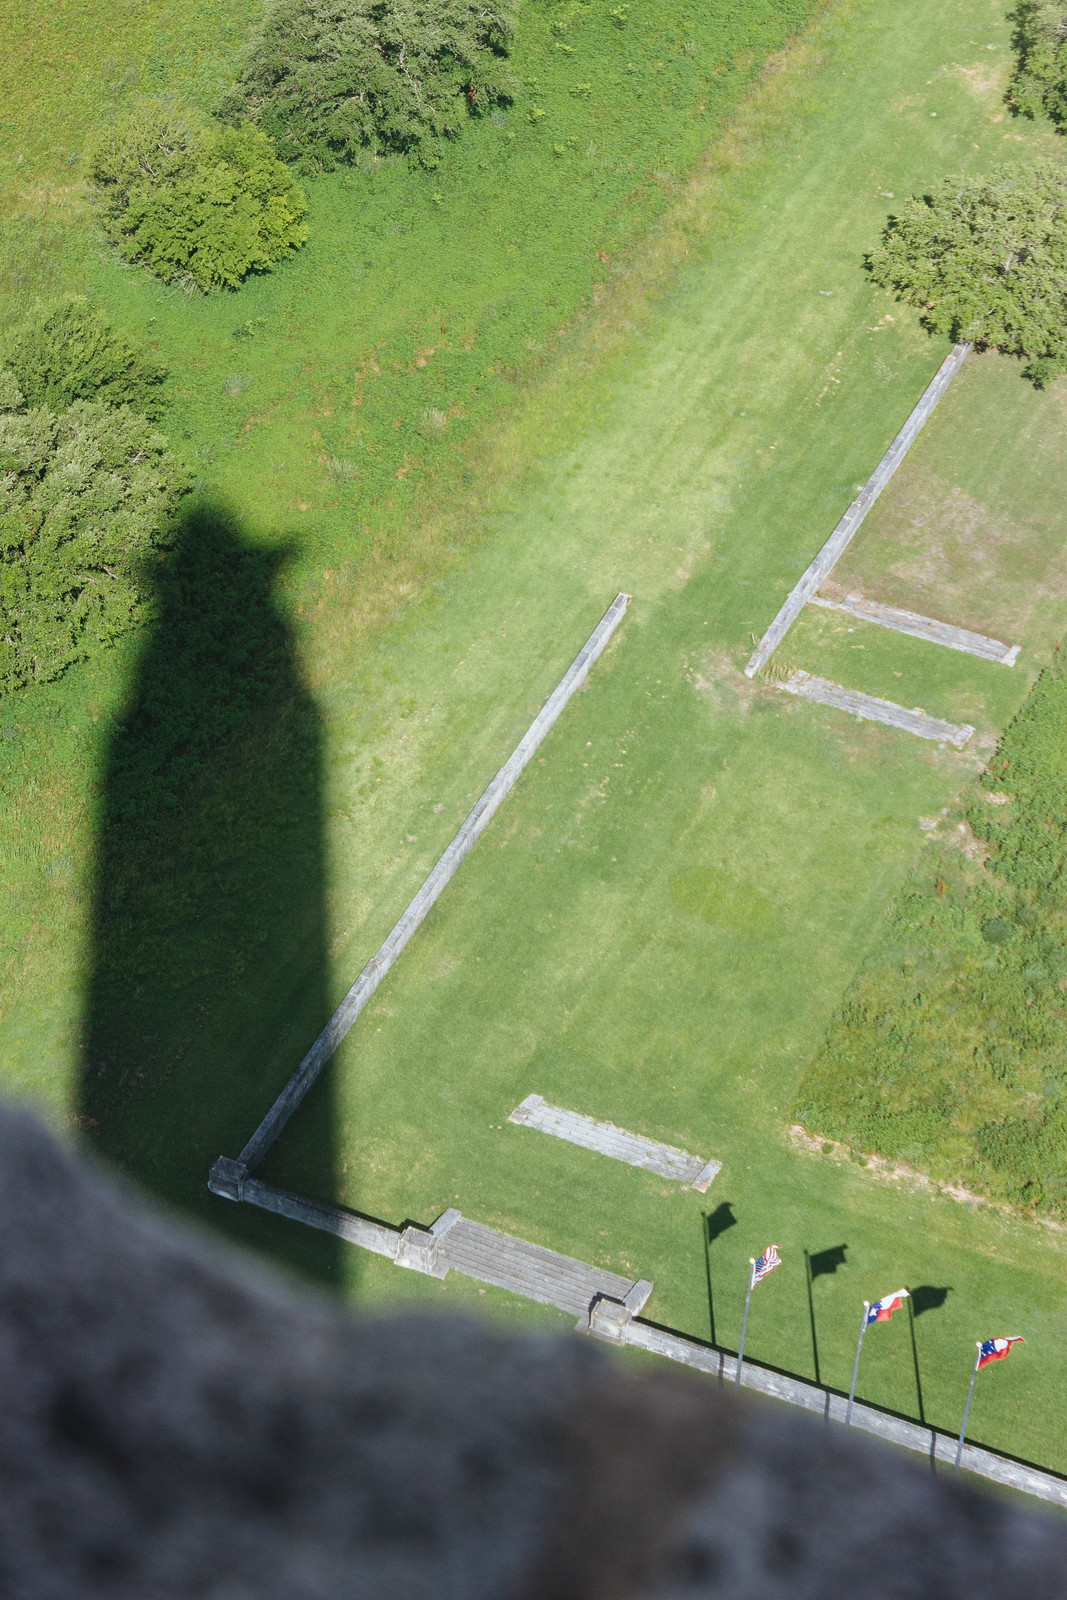 Shadow of a stone column on a grassy field with three flags seen from above